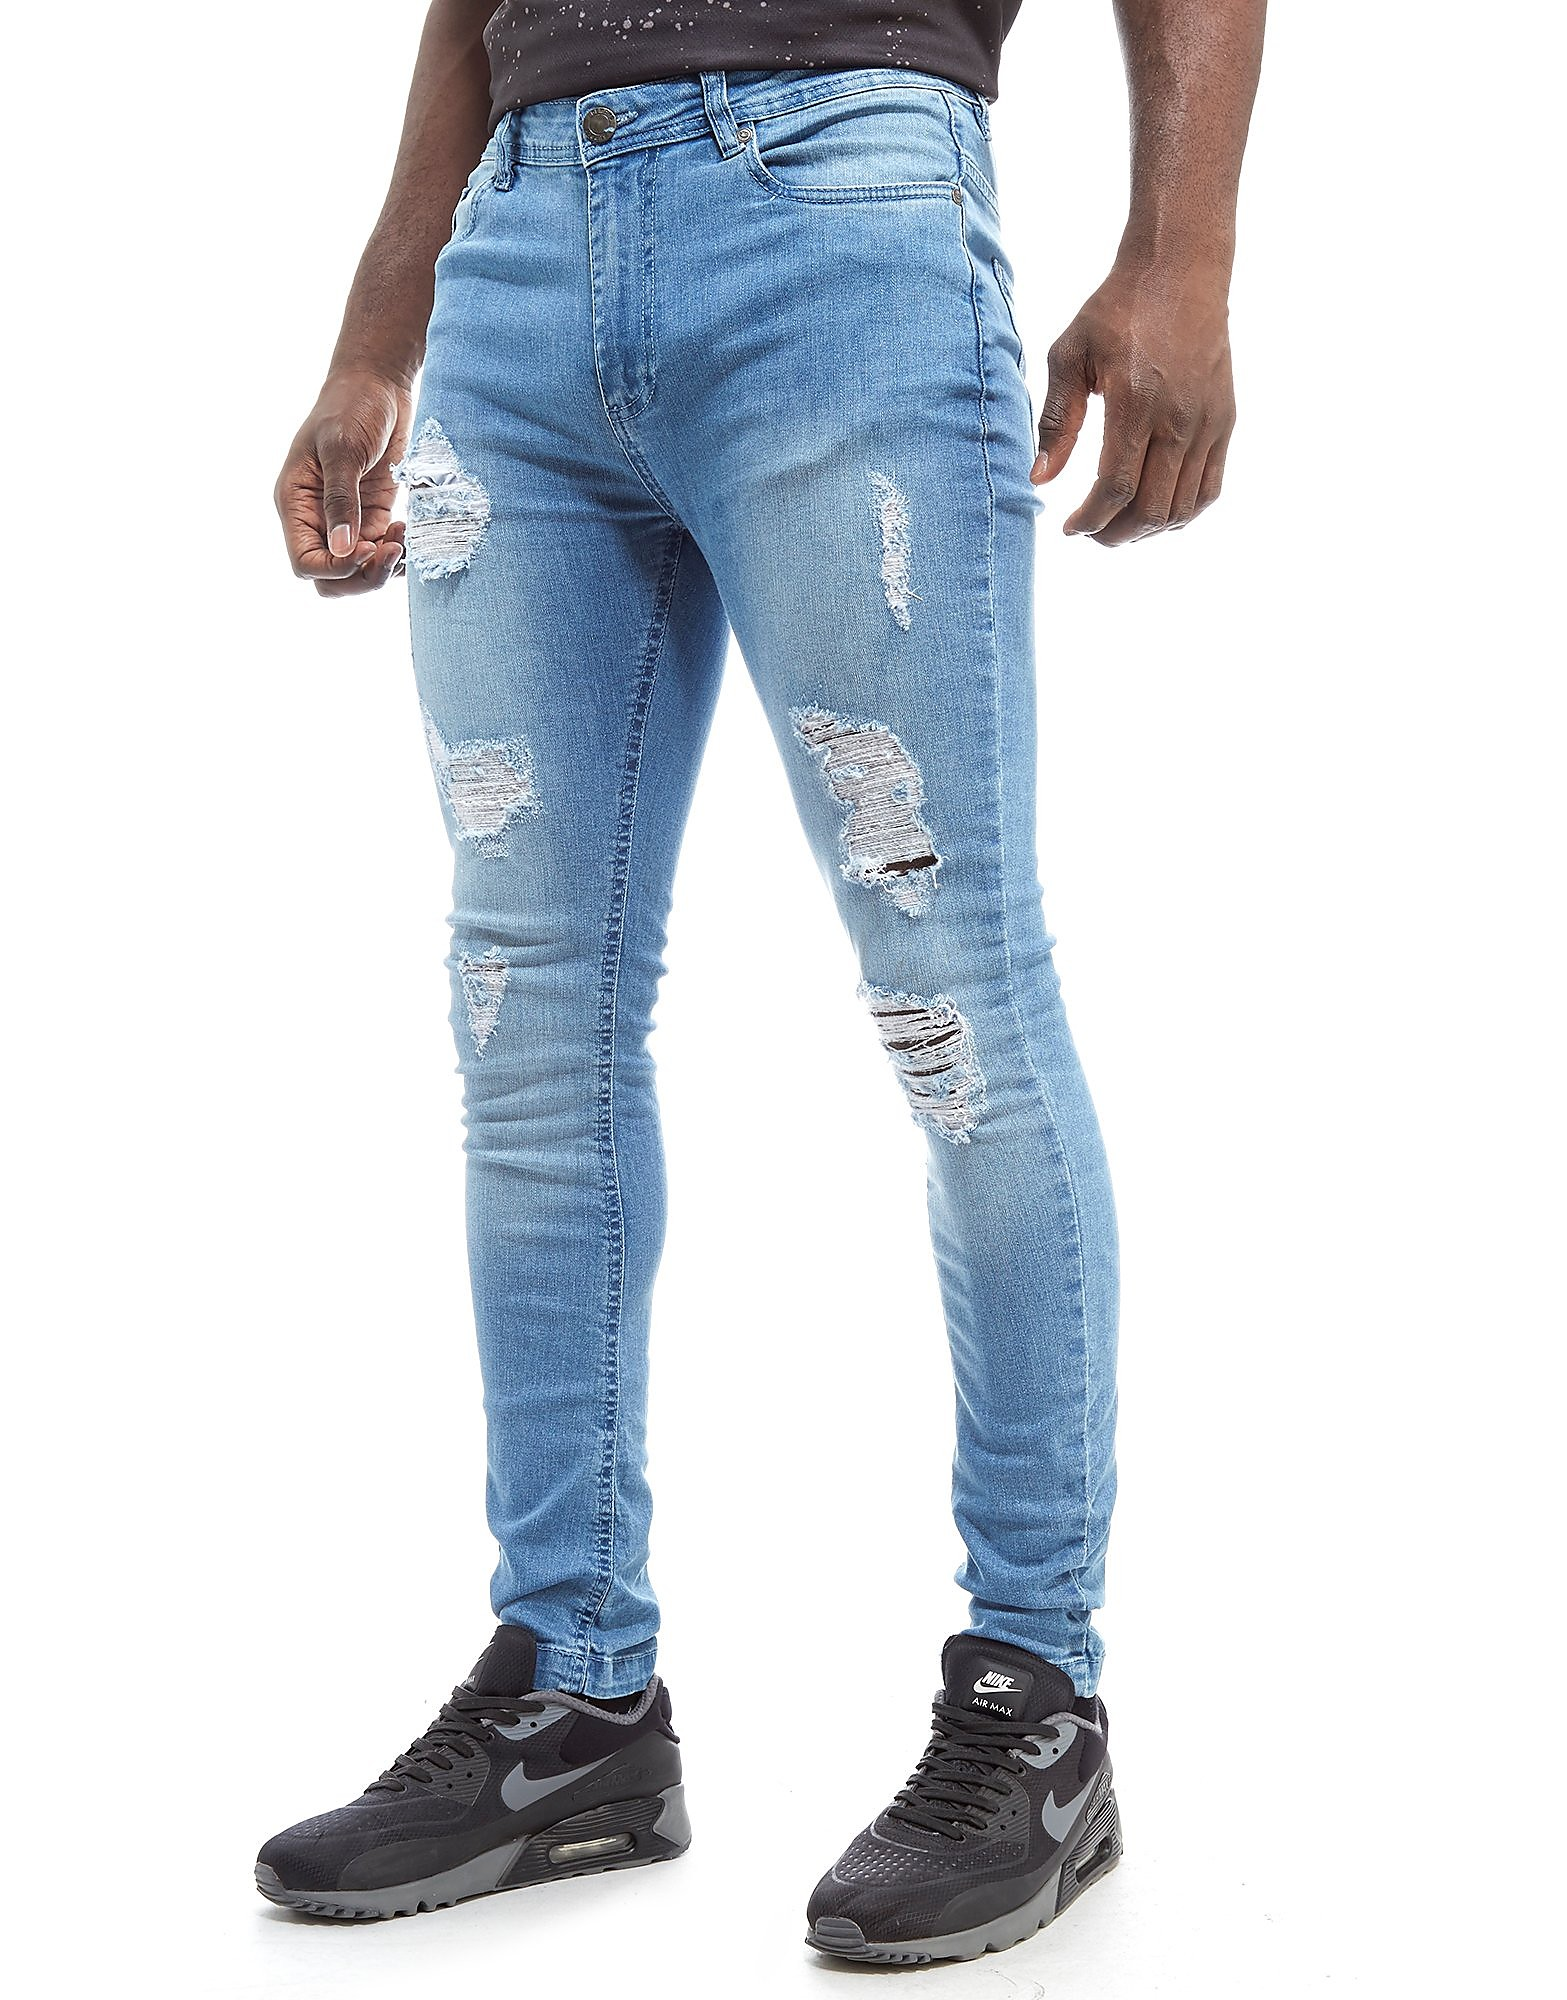 Supply & Demand Kaliber Jeans